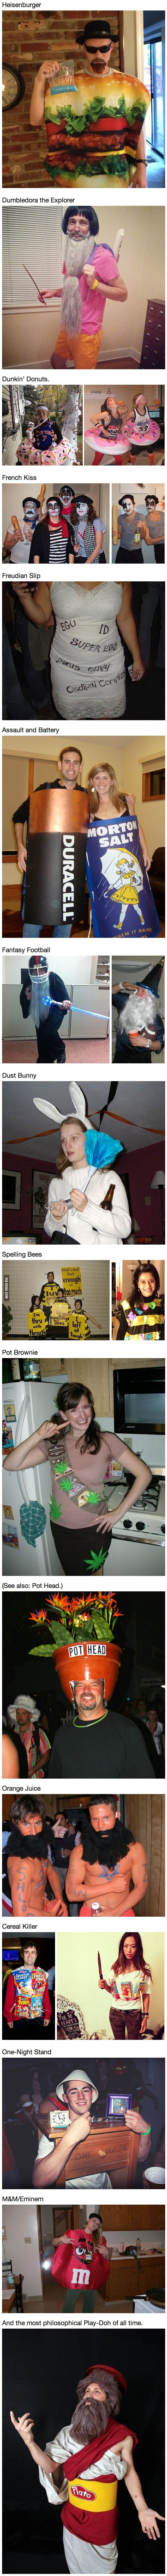 These people are doing Halloween right.: Punny Costume, Halloween Costumes, Costume Ideas, Punny Halloween, Clever Costumes, Funny Stuff, Orange Juice, Halloween Ideas, Funny Costumes